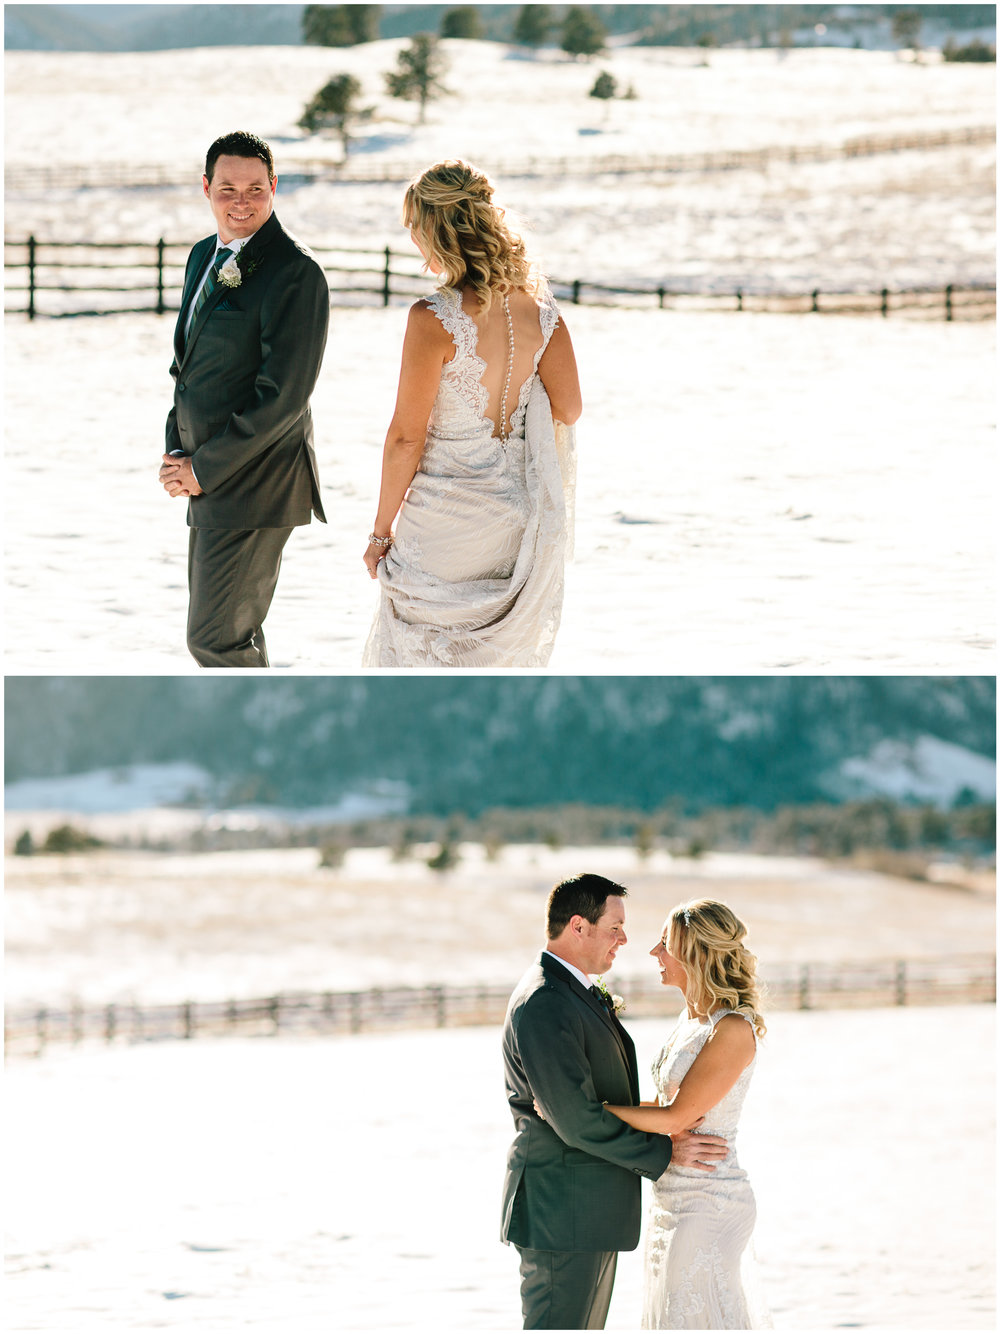 spruce_mountain_ranch_wedding_19.jpg